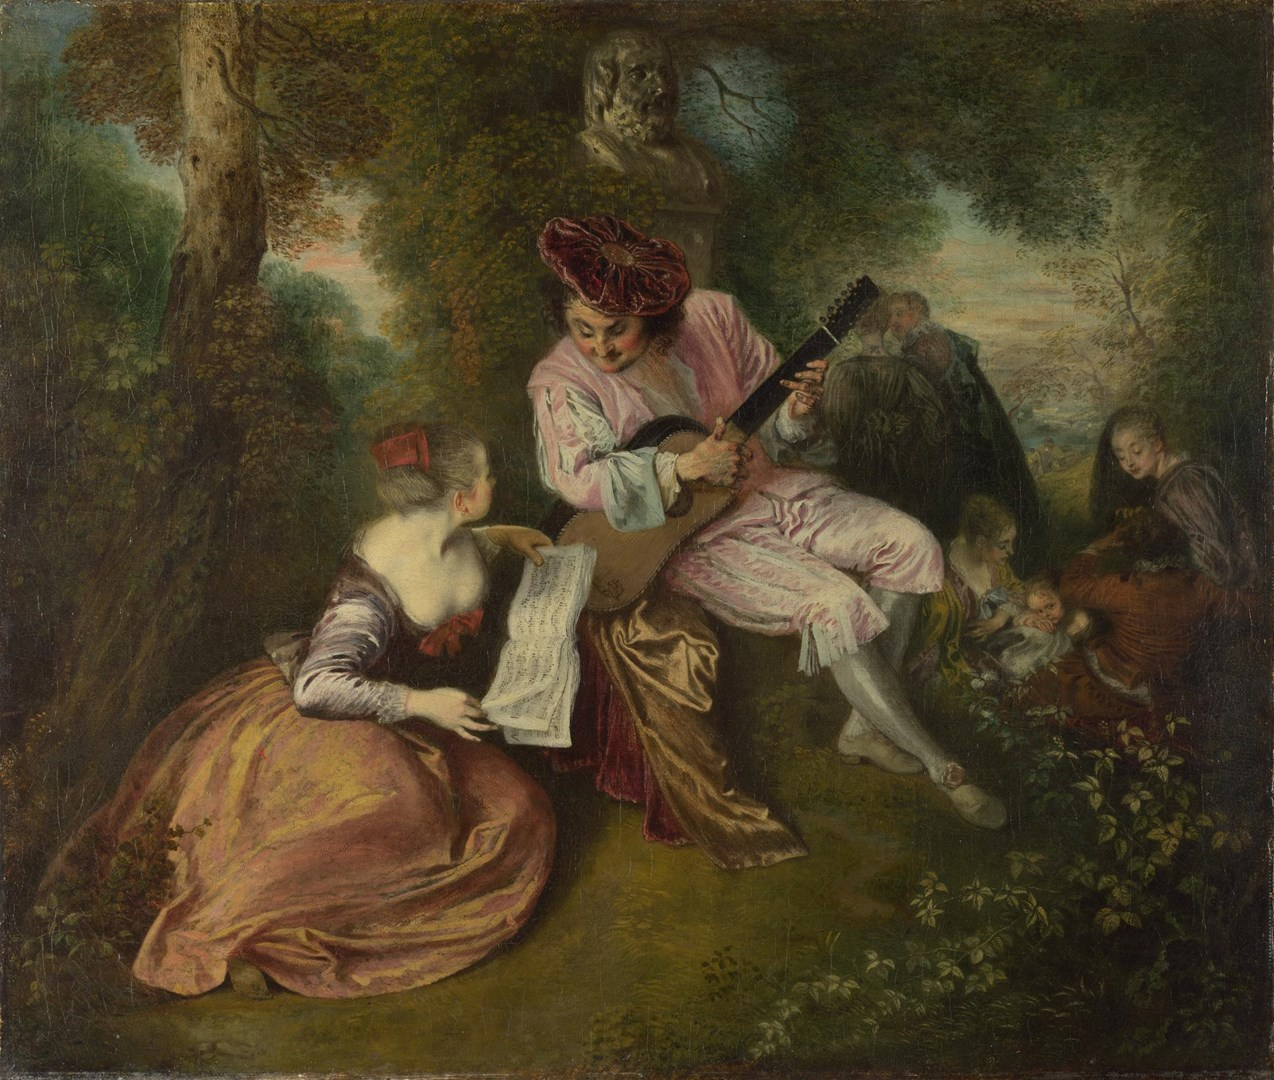 The Scale of Love by Jean-Antoine Watteau